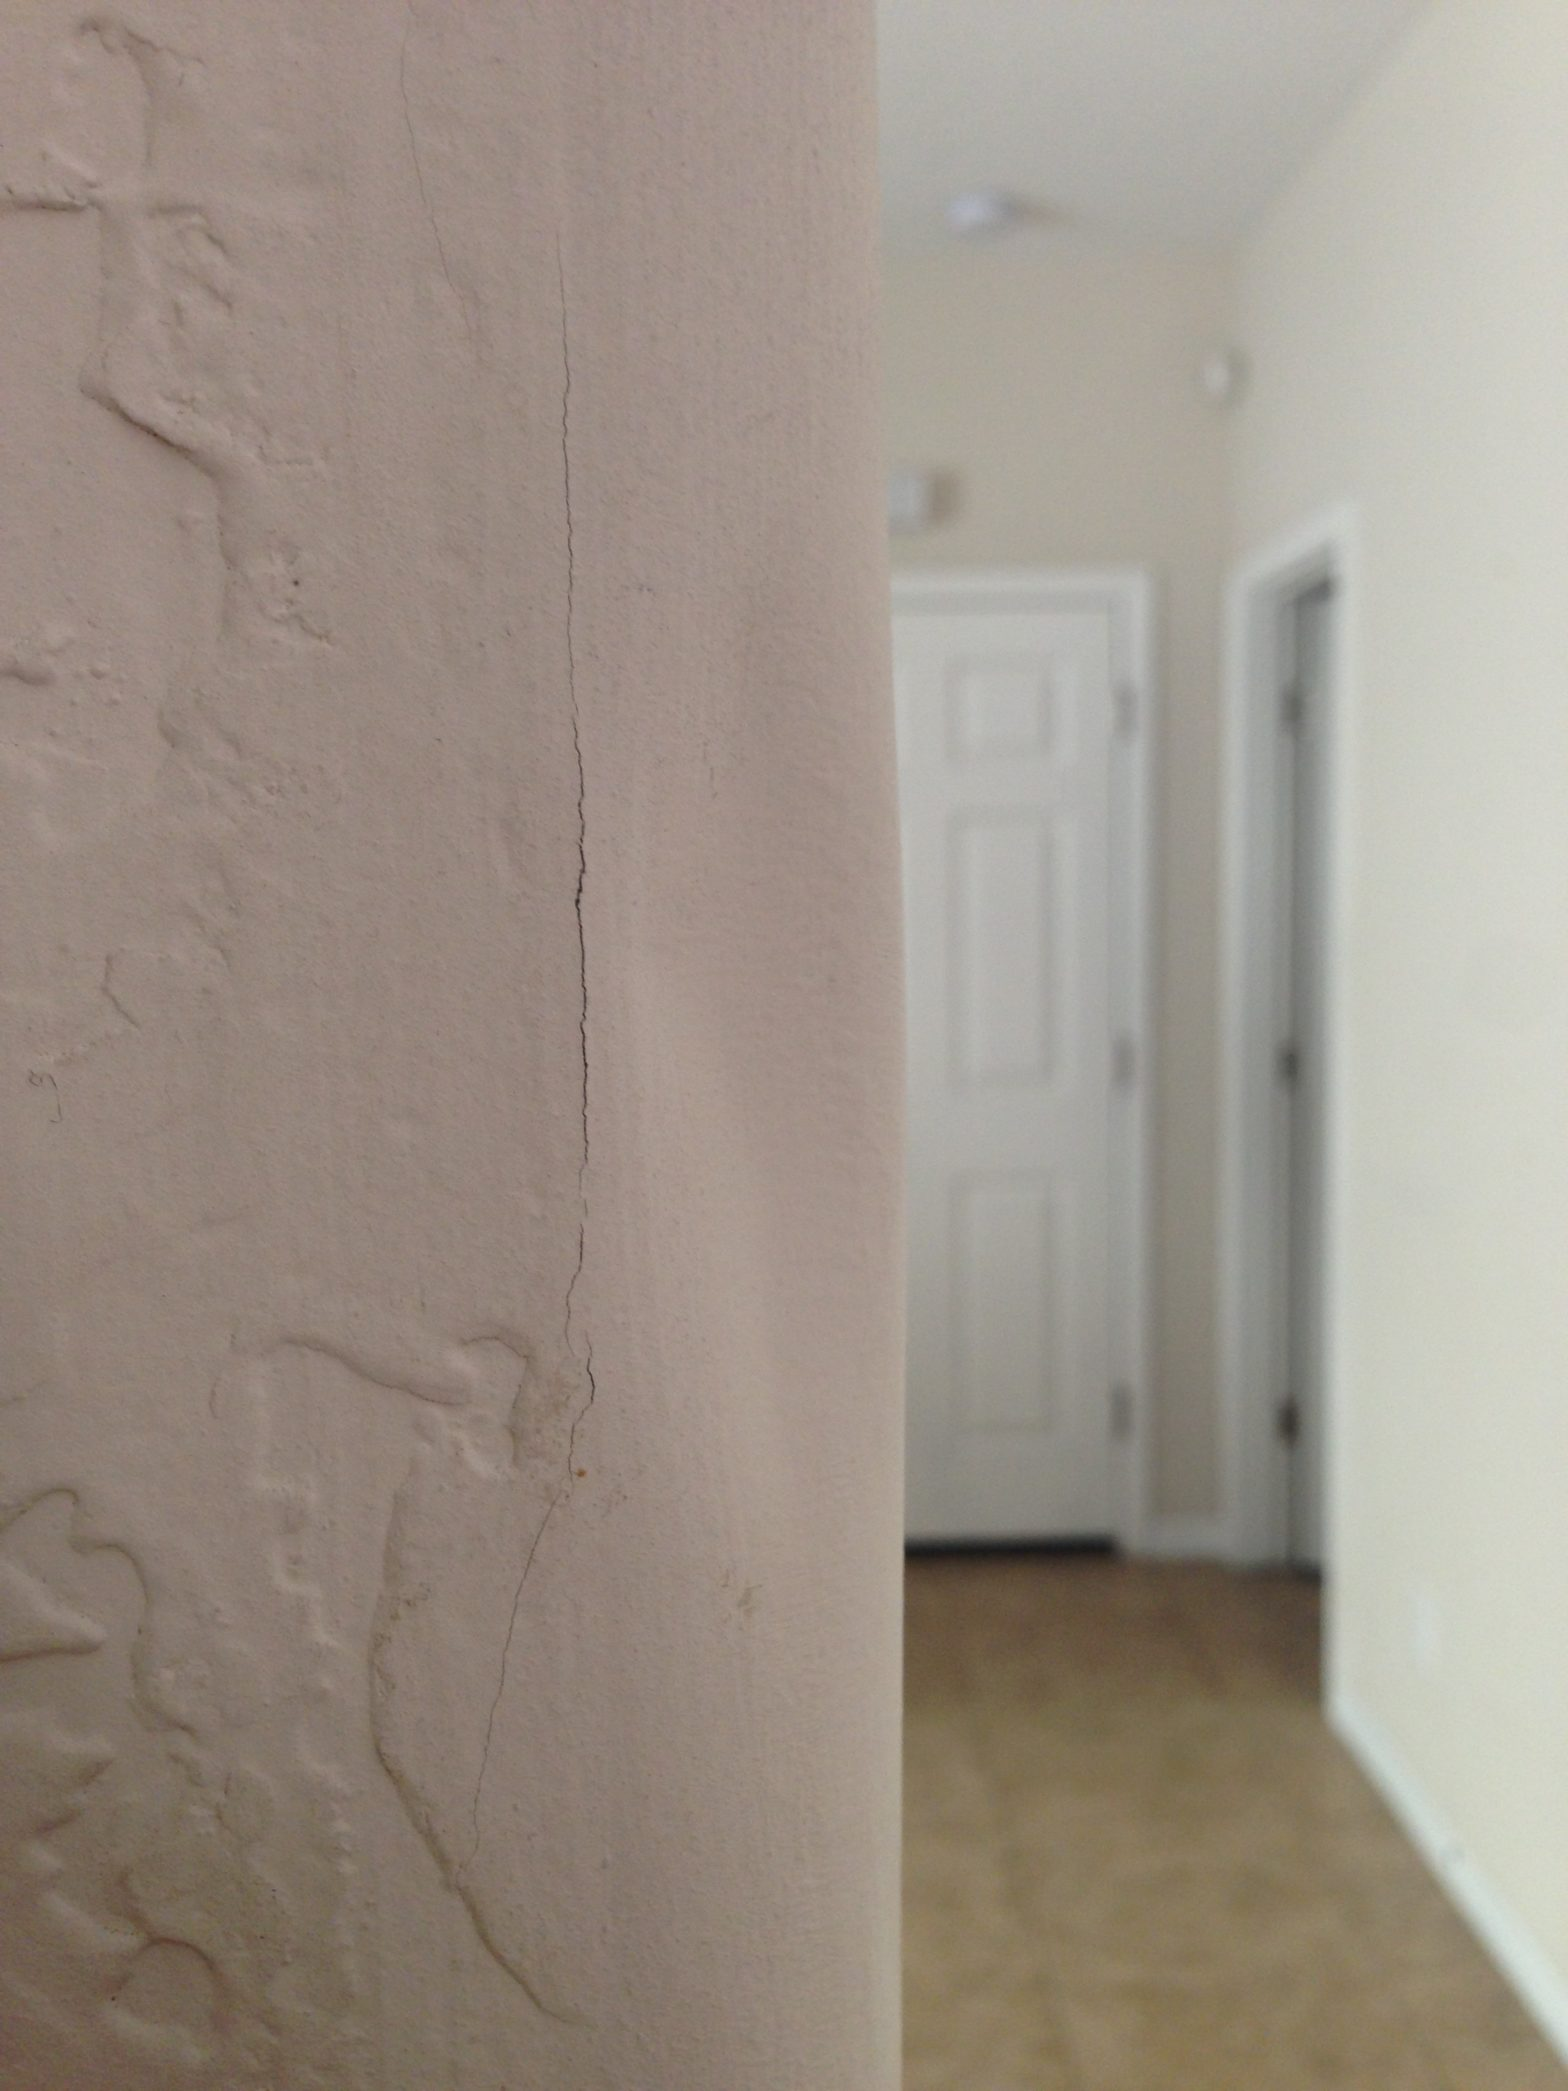 How To Repair A Rounded Bullnose Drywall Corner That Has A Big Dent In It Terrycaliendo Com